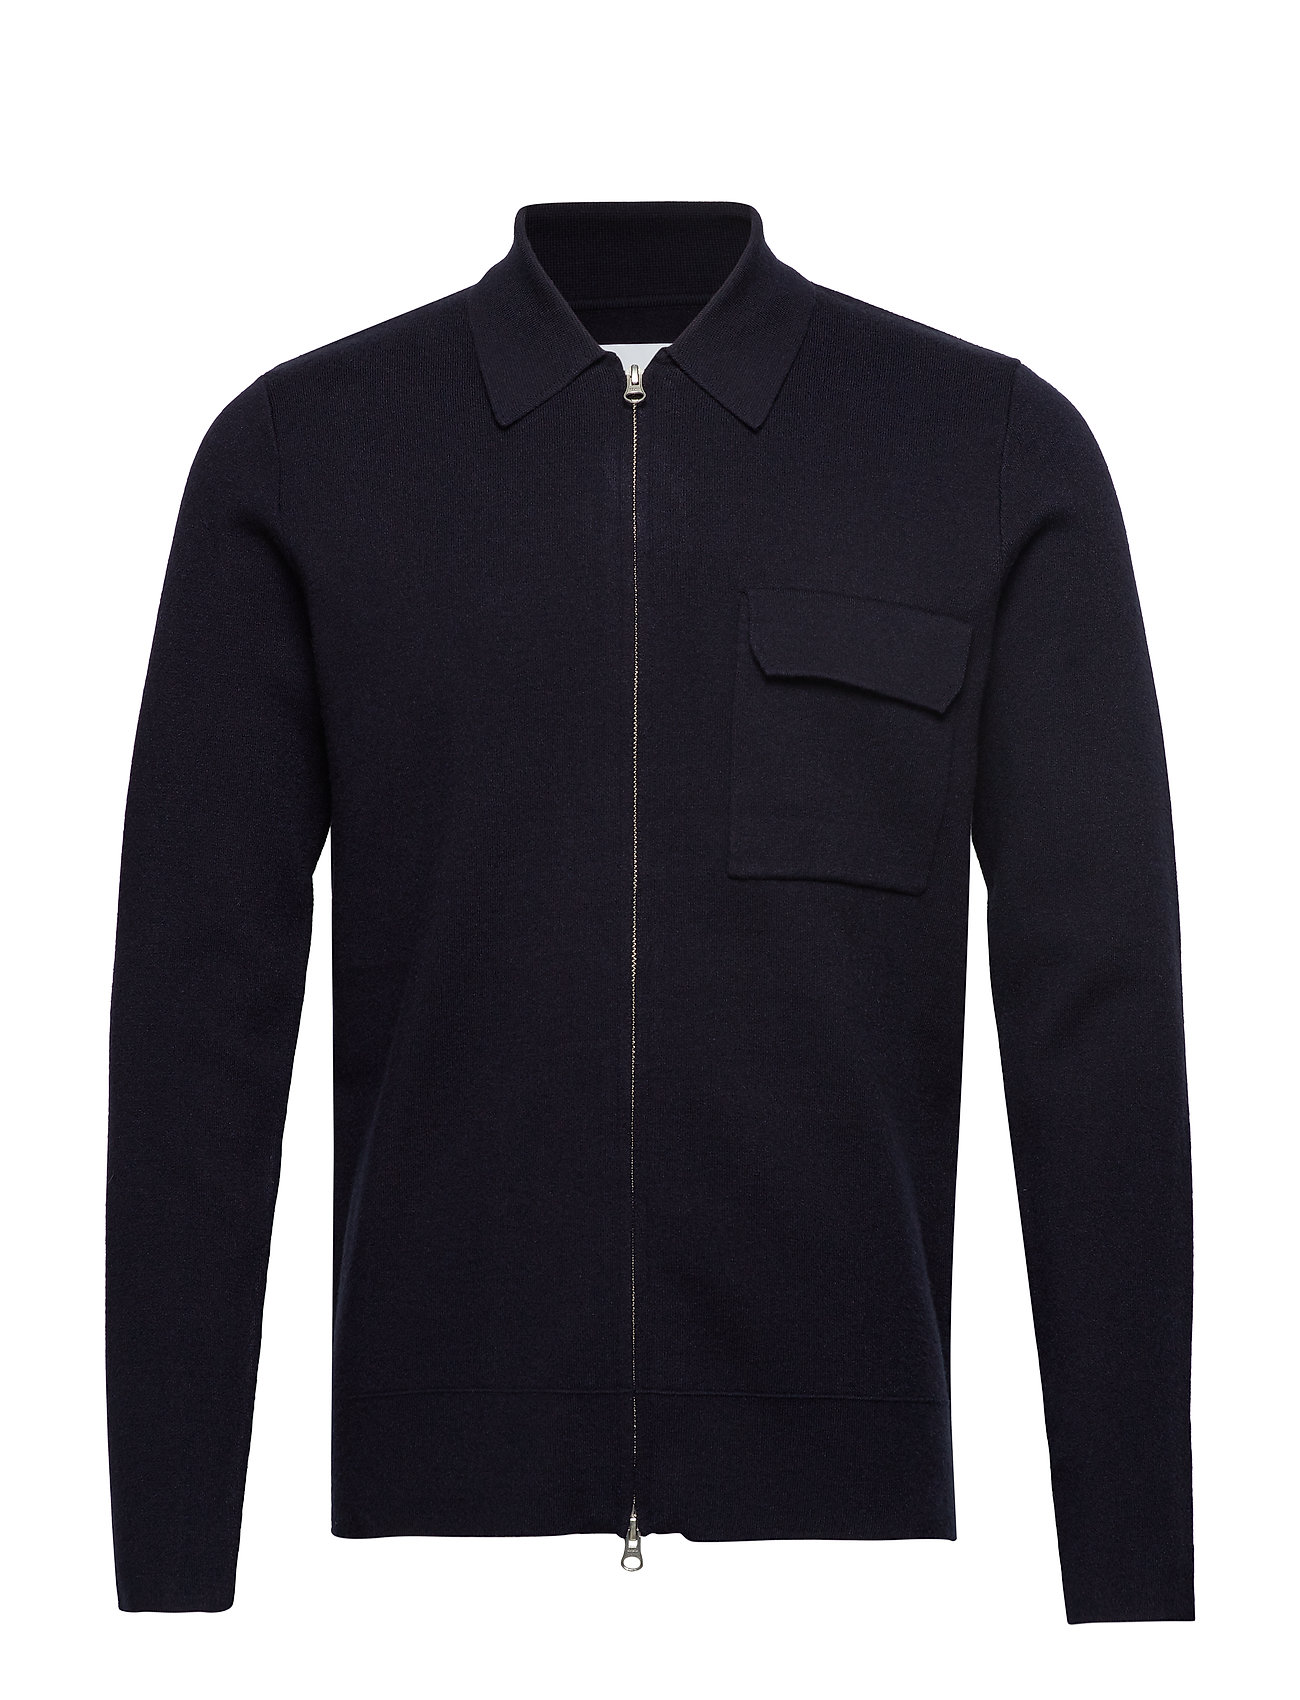 Struer Zip Struer 10490night Cardigan SkySamsøeamp; SkySamsøeamp; Zip 10490night Cardigan rCBedxo